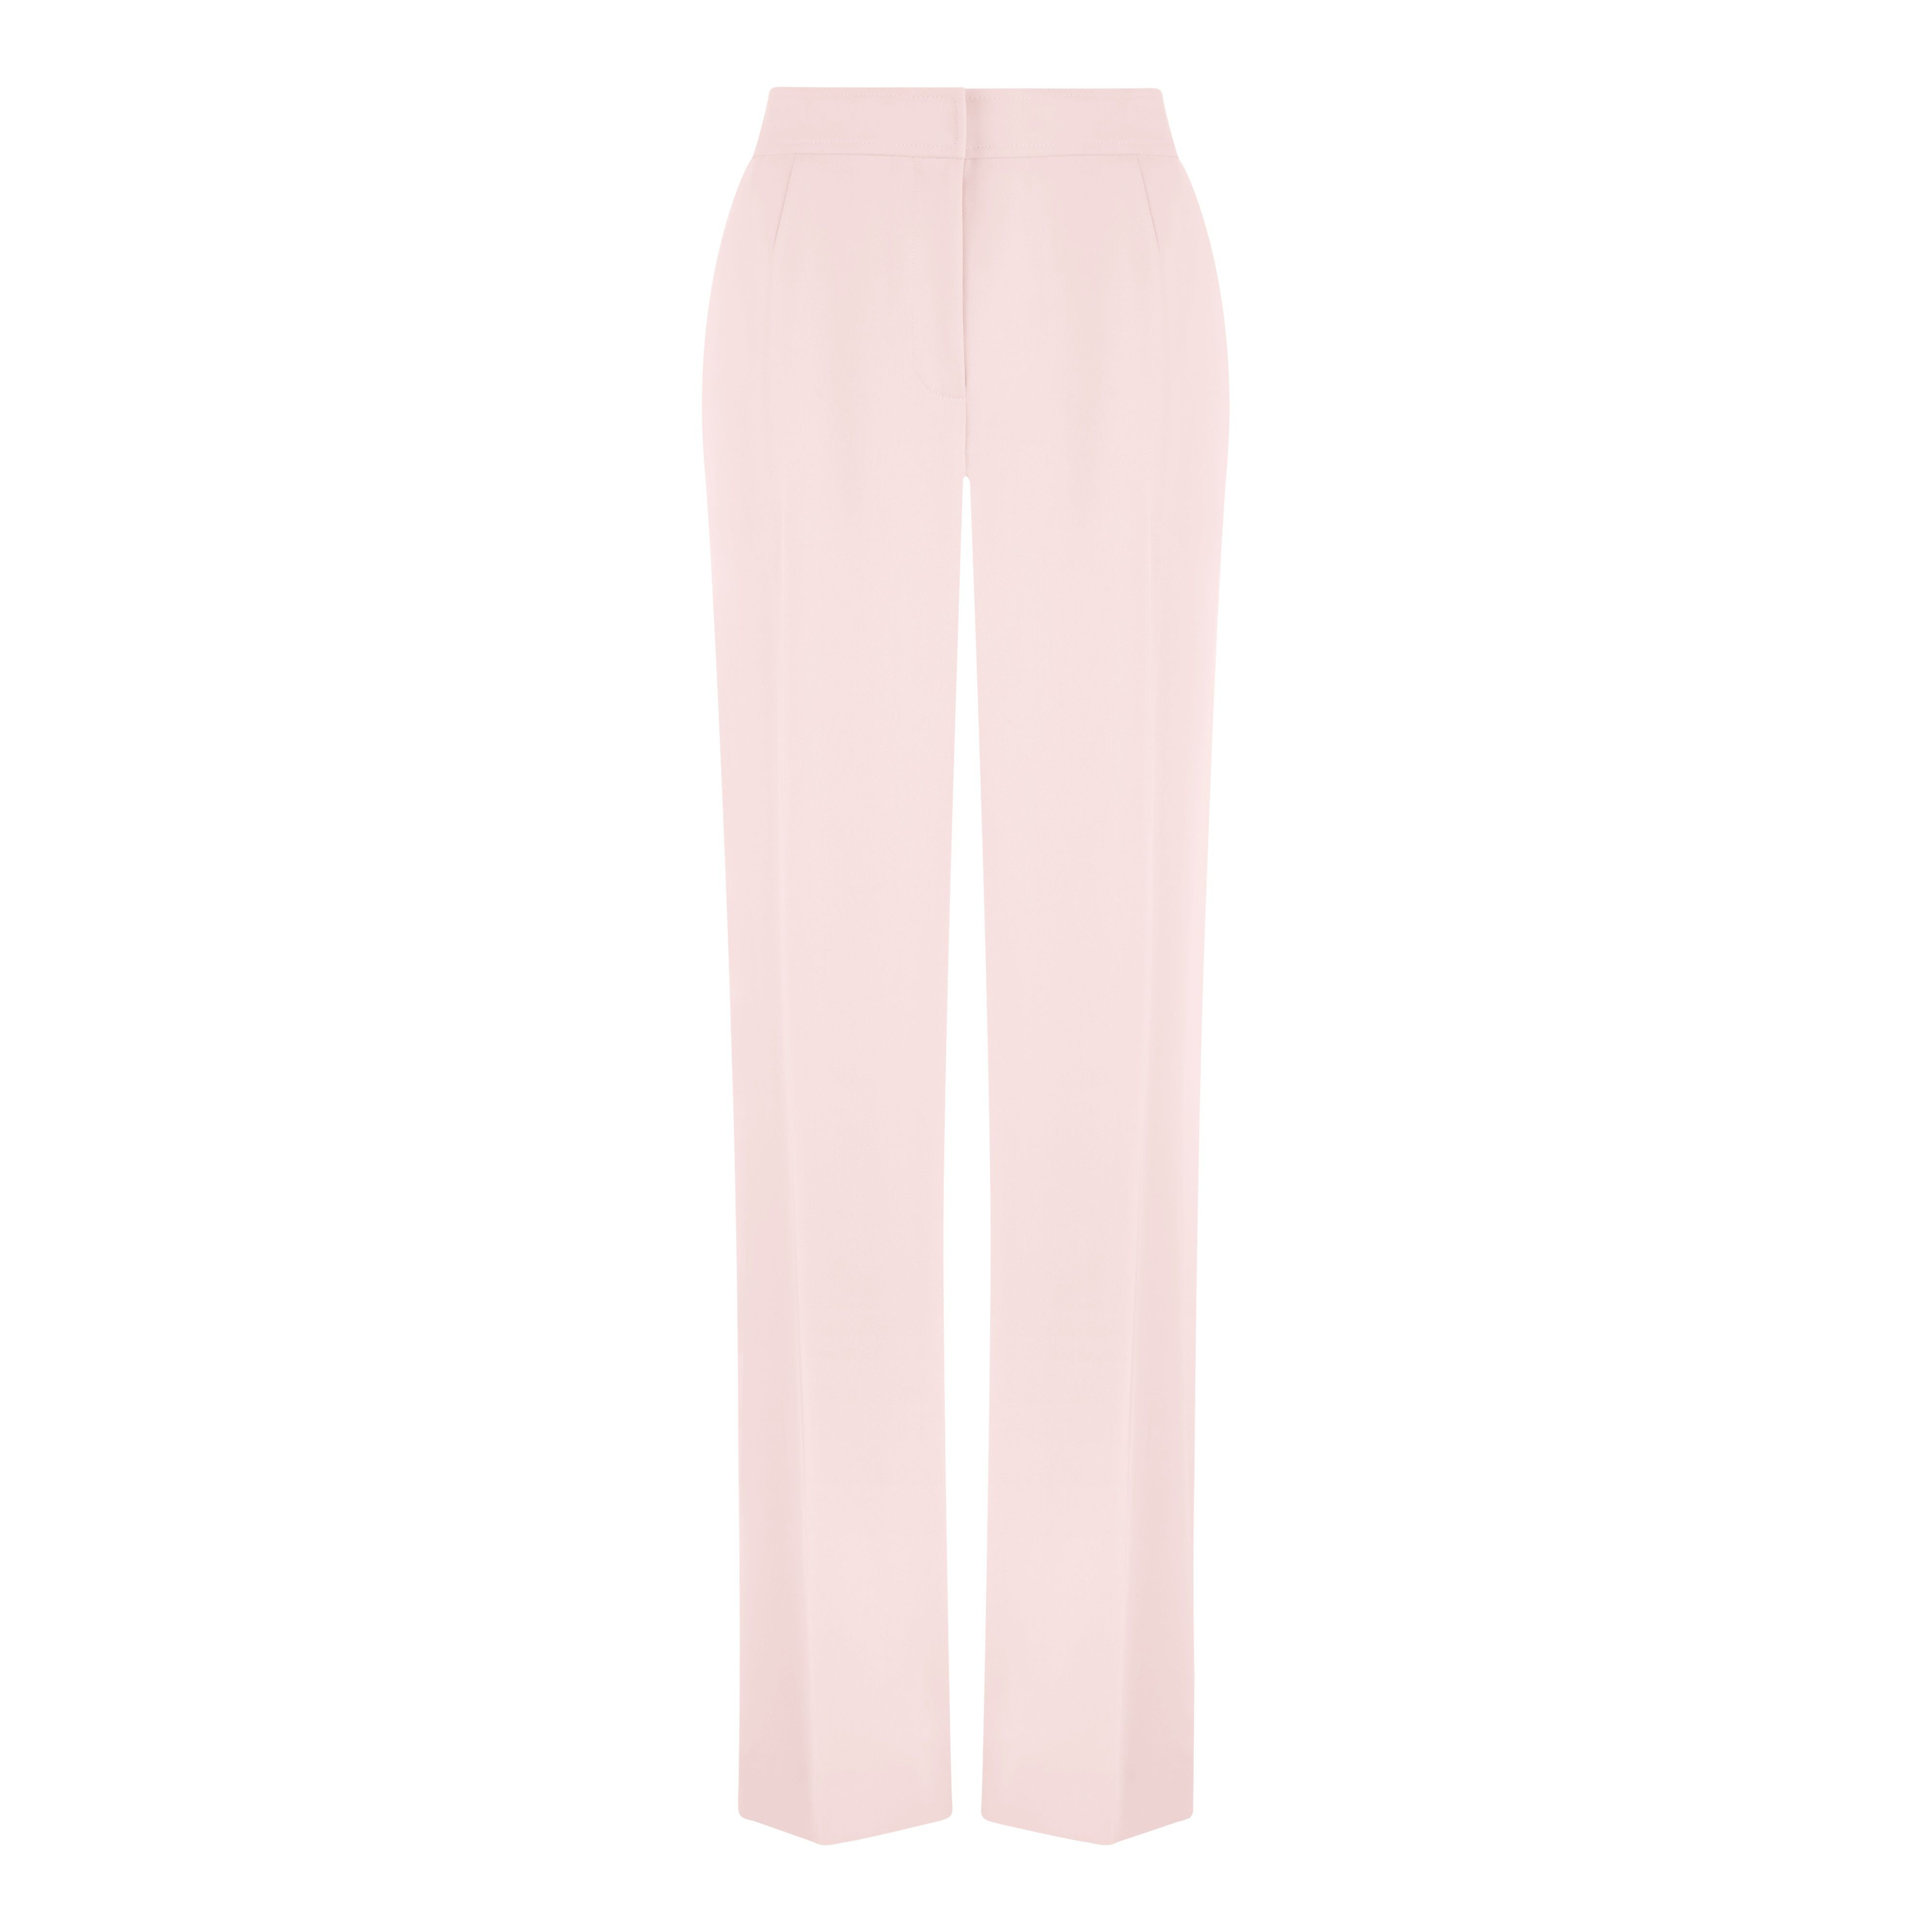 Pink Blush Trousers